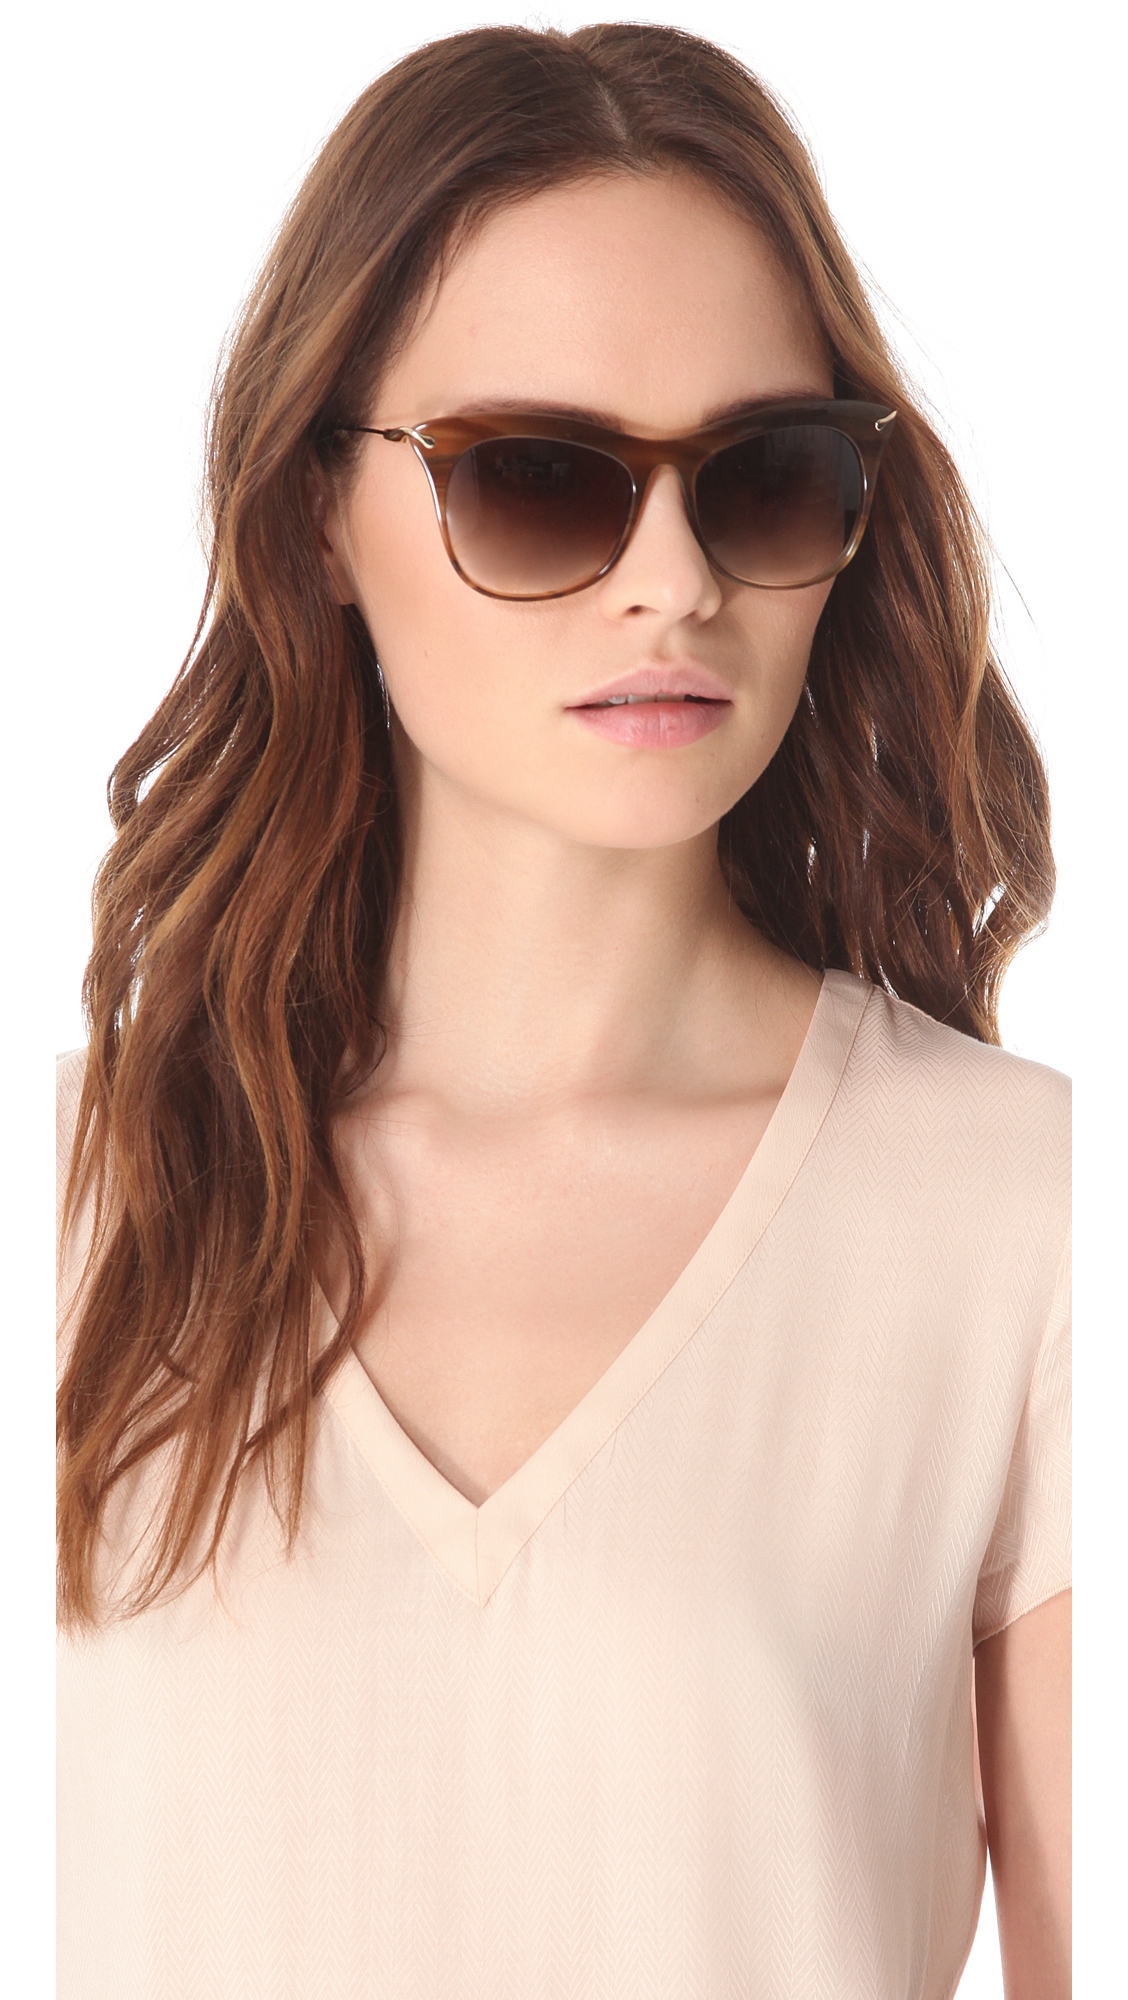 d311a09272 Elizabeth and James Fairfax Sunglasses in Brown - Lyst